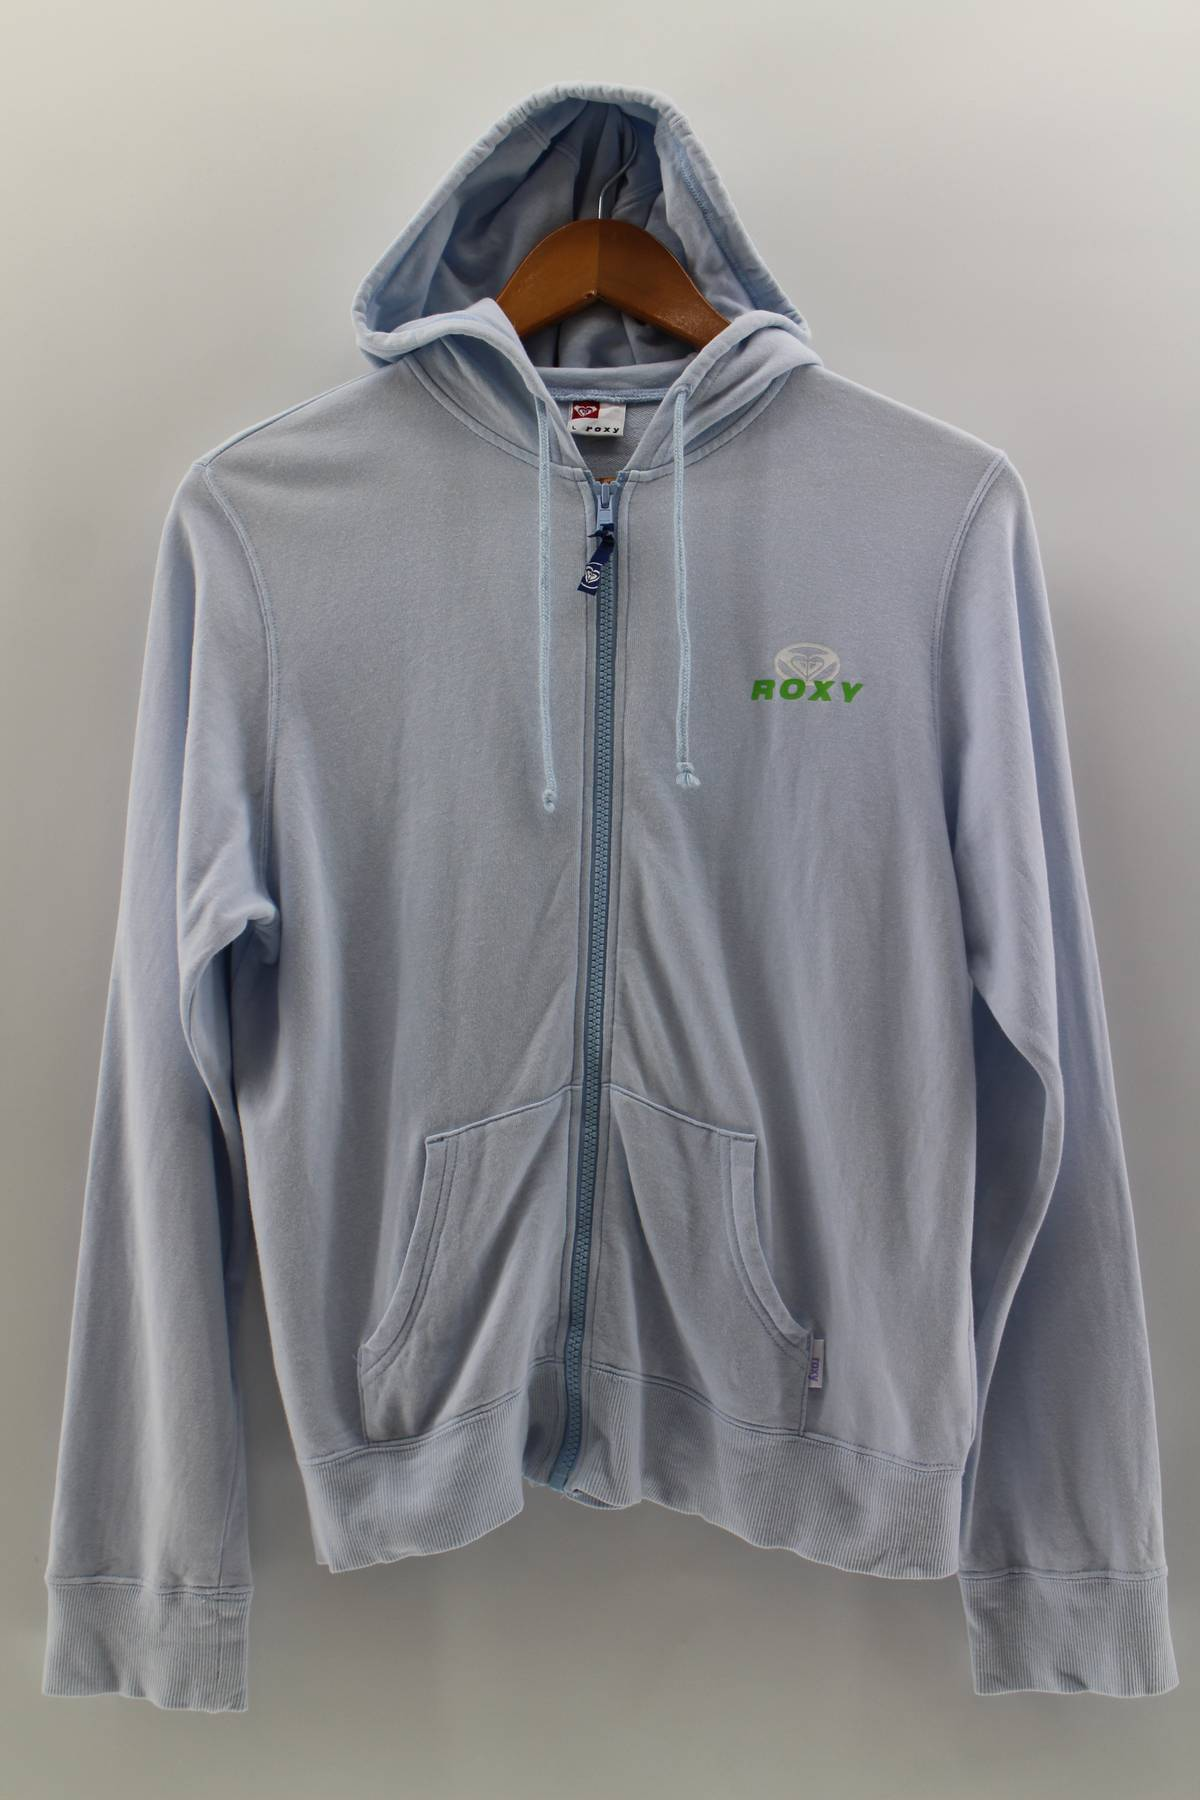 dd29afc1398e60 Other ×. Vintage ROXY Sweatshirt Hoodie Women Medium Roxy Quiksilver  Pullover Surfing ...